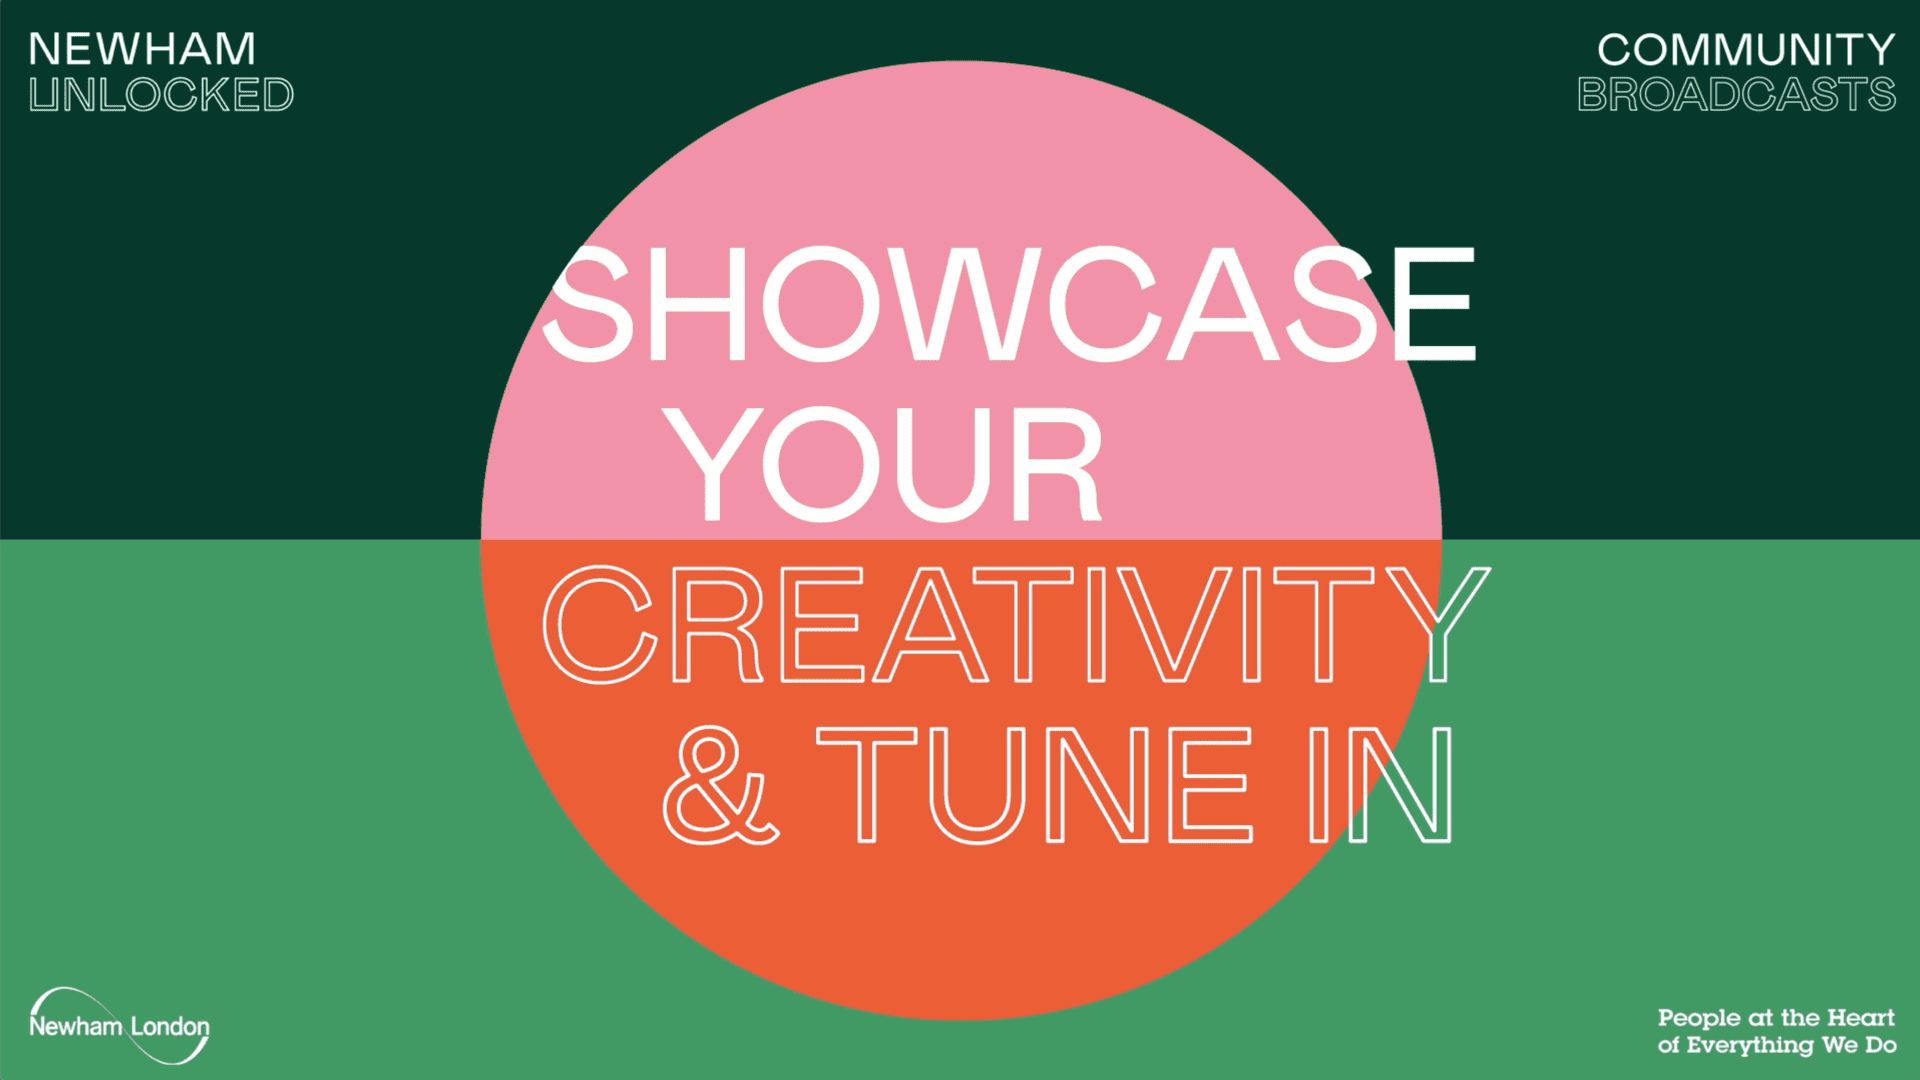 Community Broadcast 1: Calling all Newham Creatives